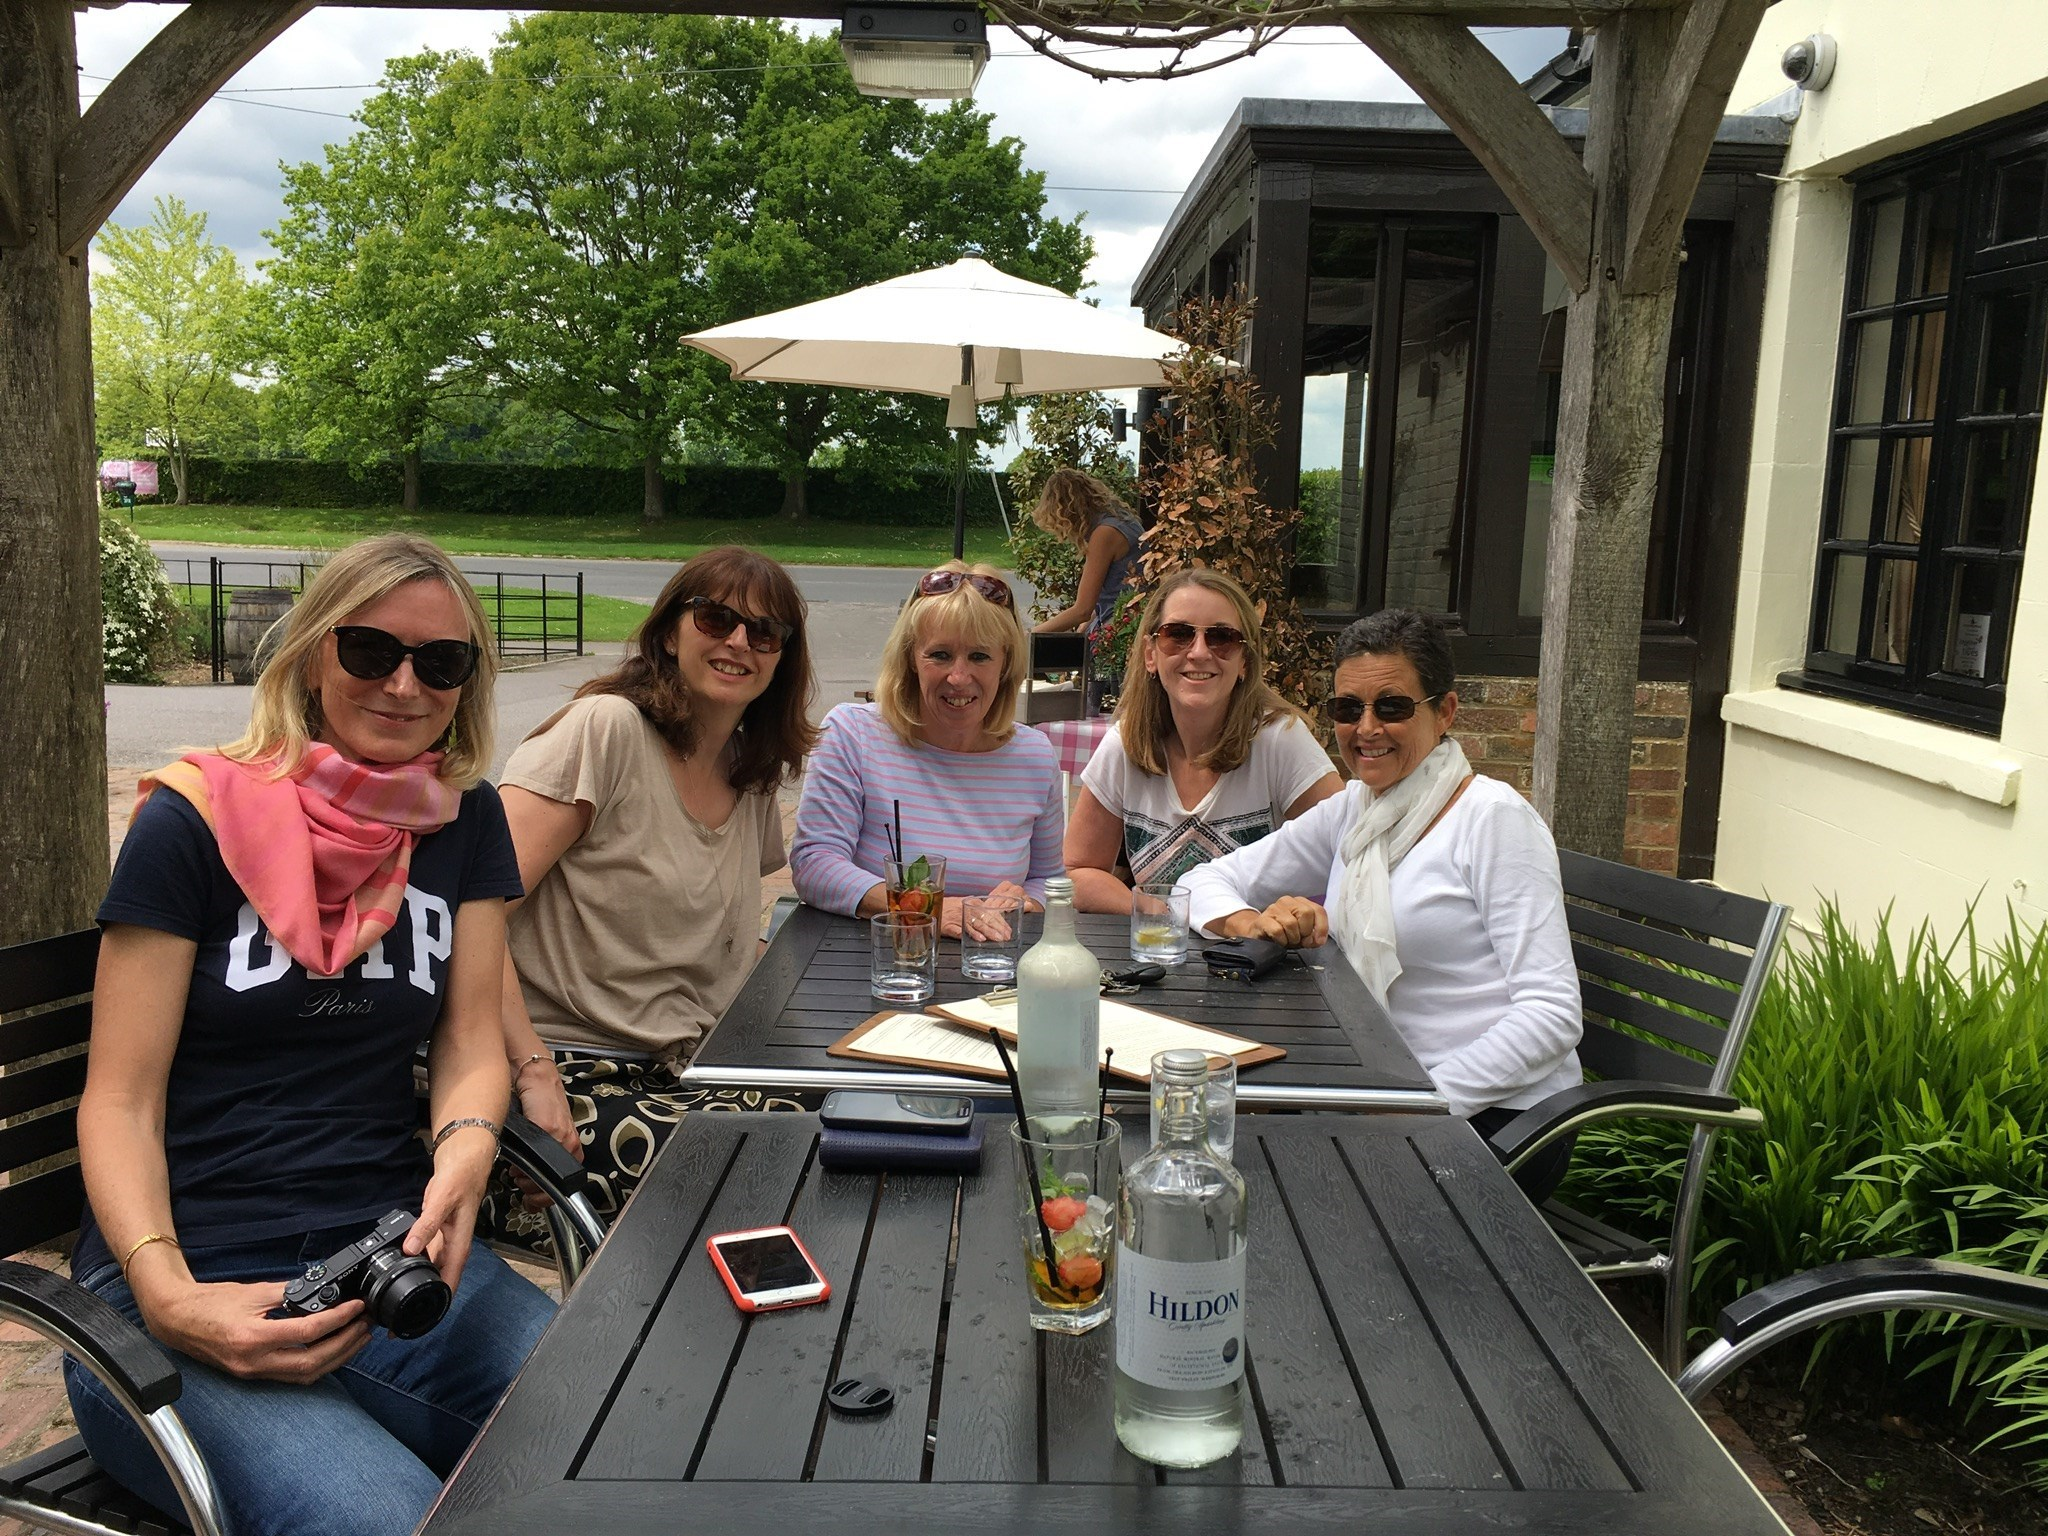 Just catching up with the usual amount of laughter - Sheenagh, Caroline, Sandie, Wiz and Piglet x